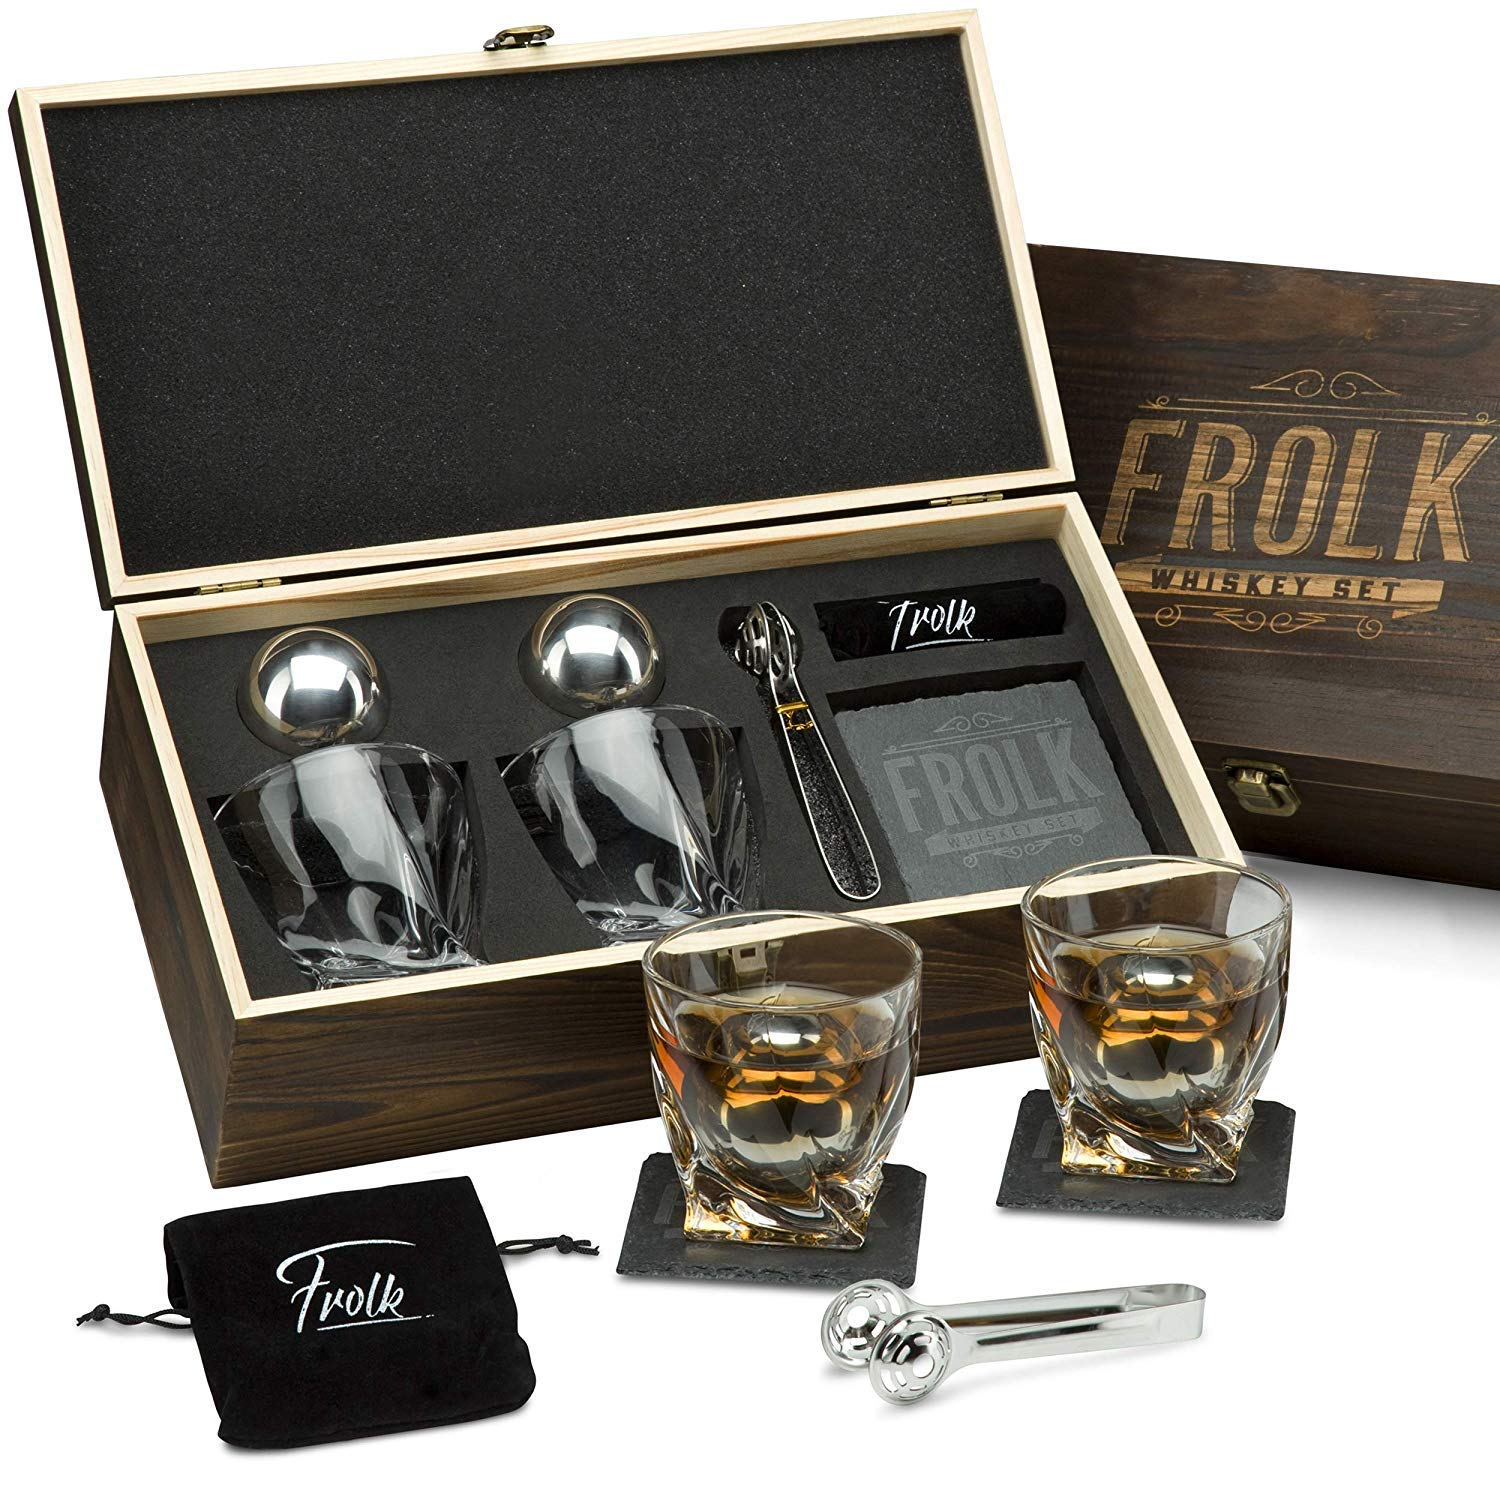 Premium Whiskey Stones Gift Set for Men - 2 King-Sized Chilling Stainless-Steel Whiskey Balls - 11 oz 2 Large Twisted Whiskey Glasses, Slate Stone Coasters, Tongs - Luxury Set in Real Pine Wood Box by Frolk